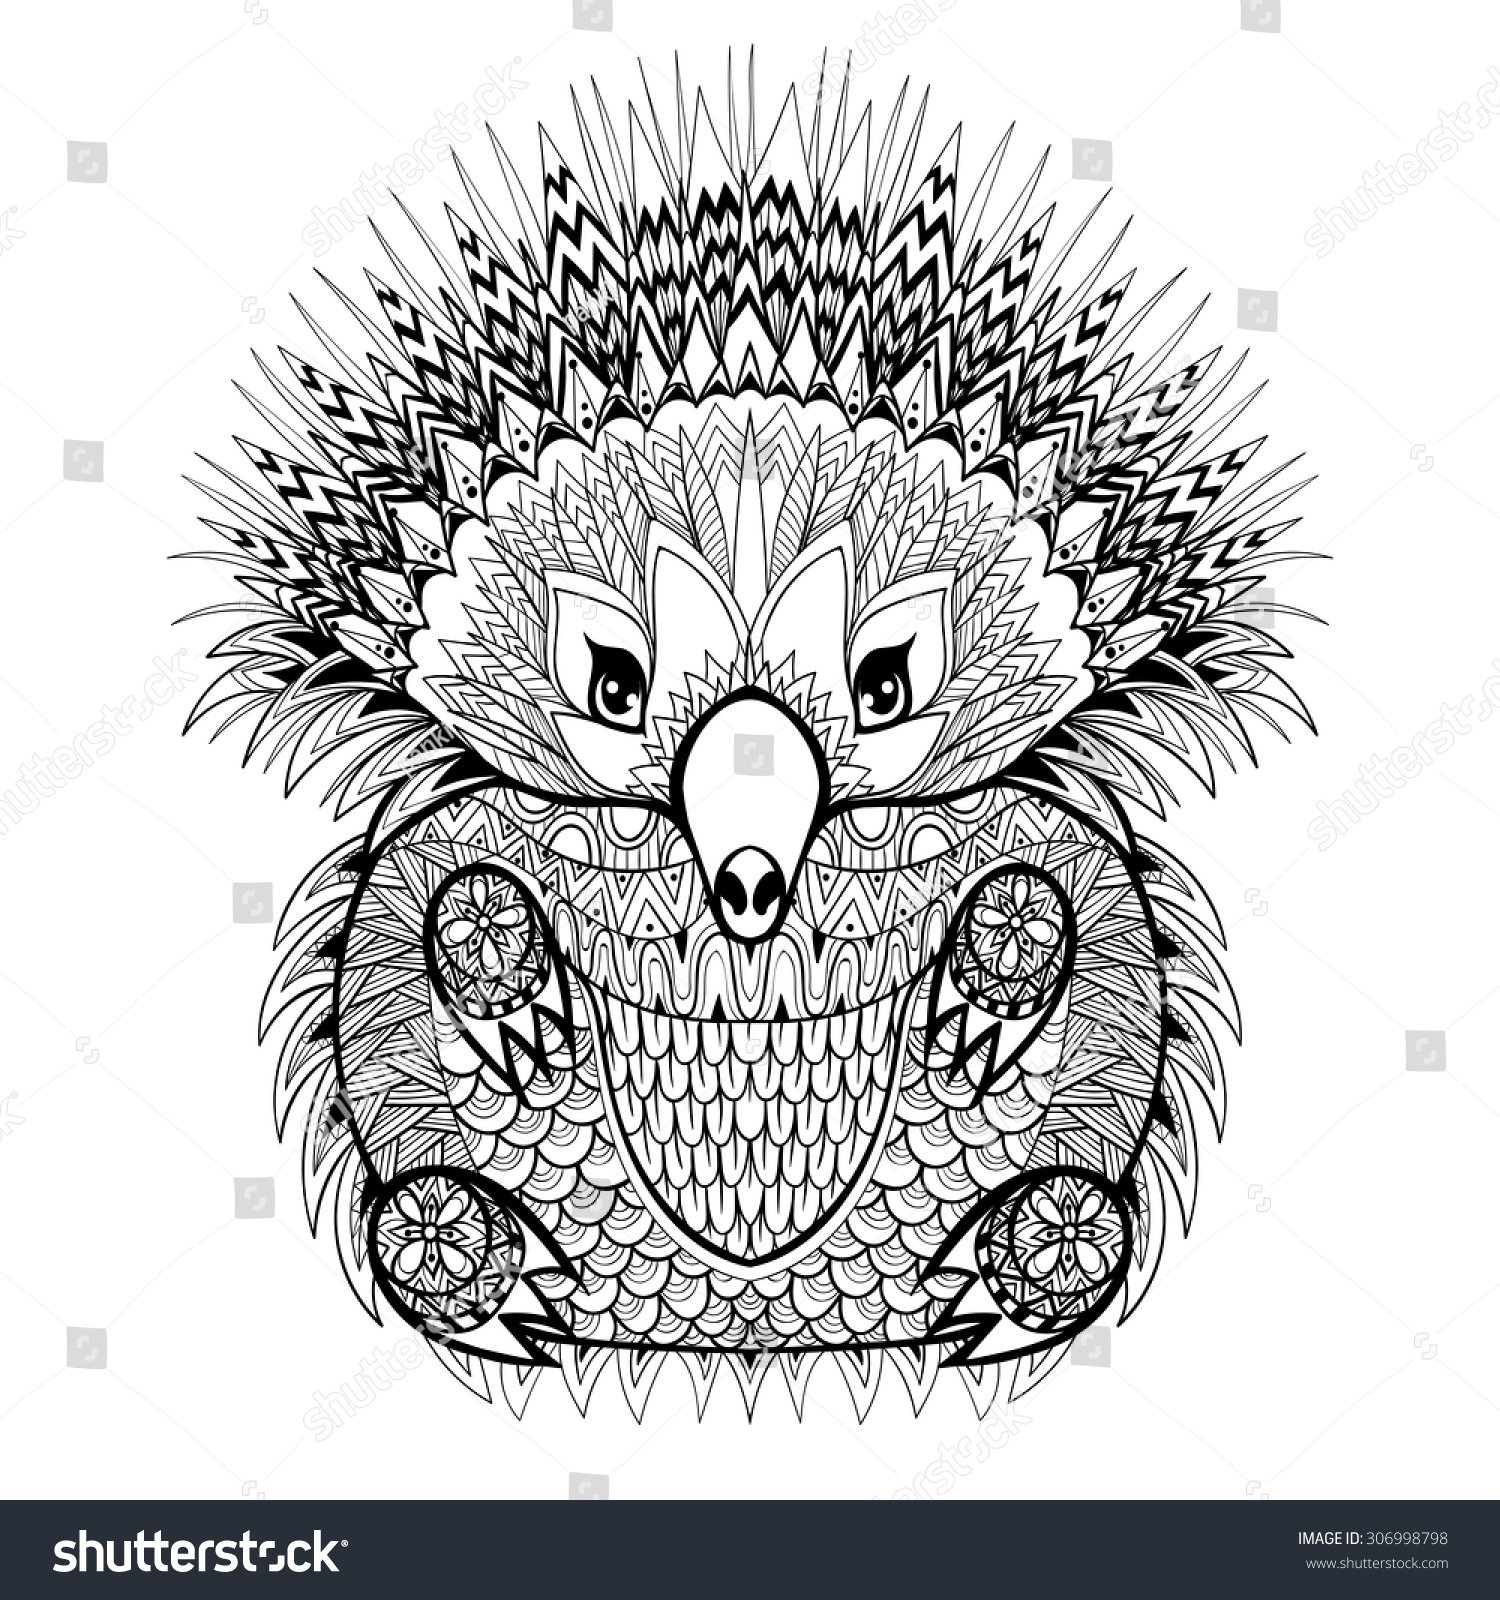 Santa In Australia Coloring Sheets With Hand Drawn Tribal Totem Echidna Australian Stock Vector Royalty